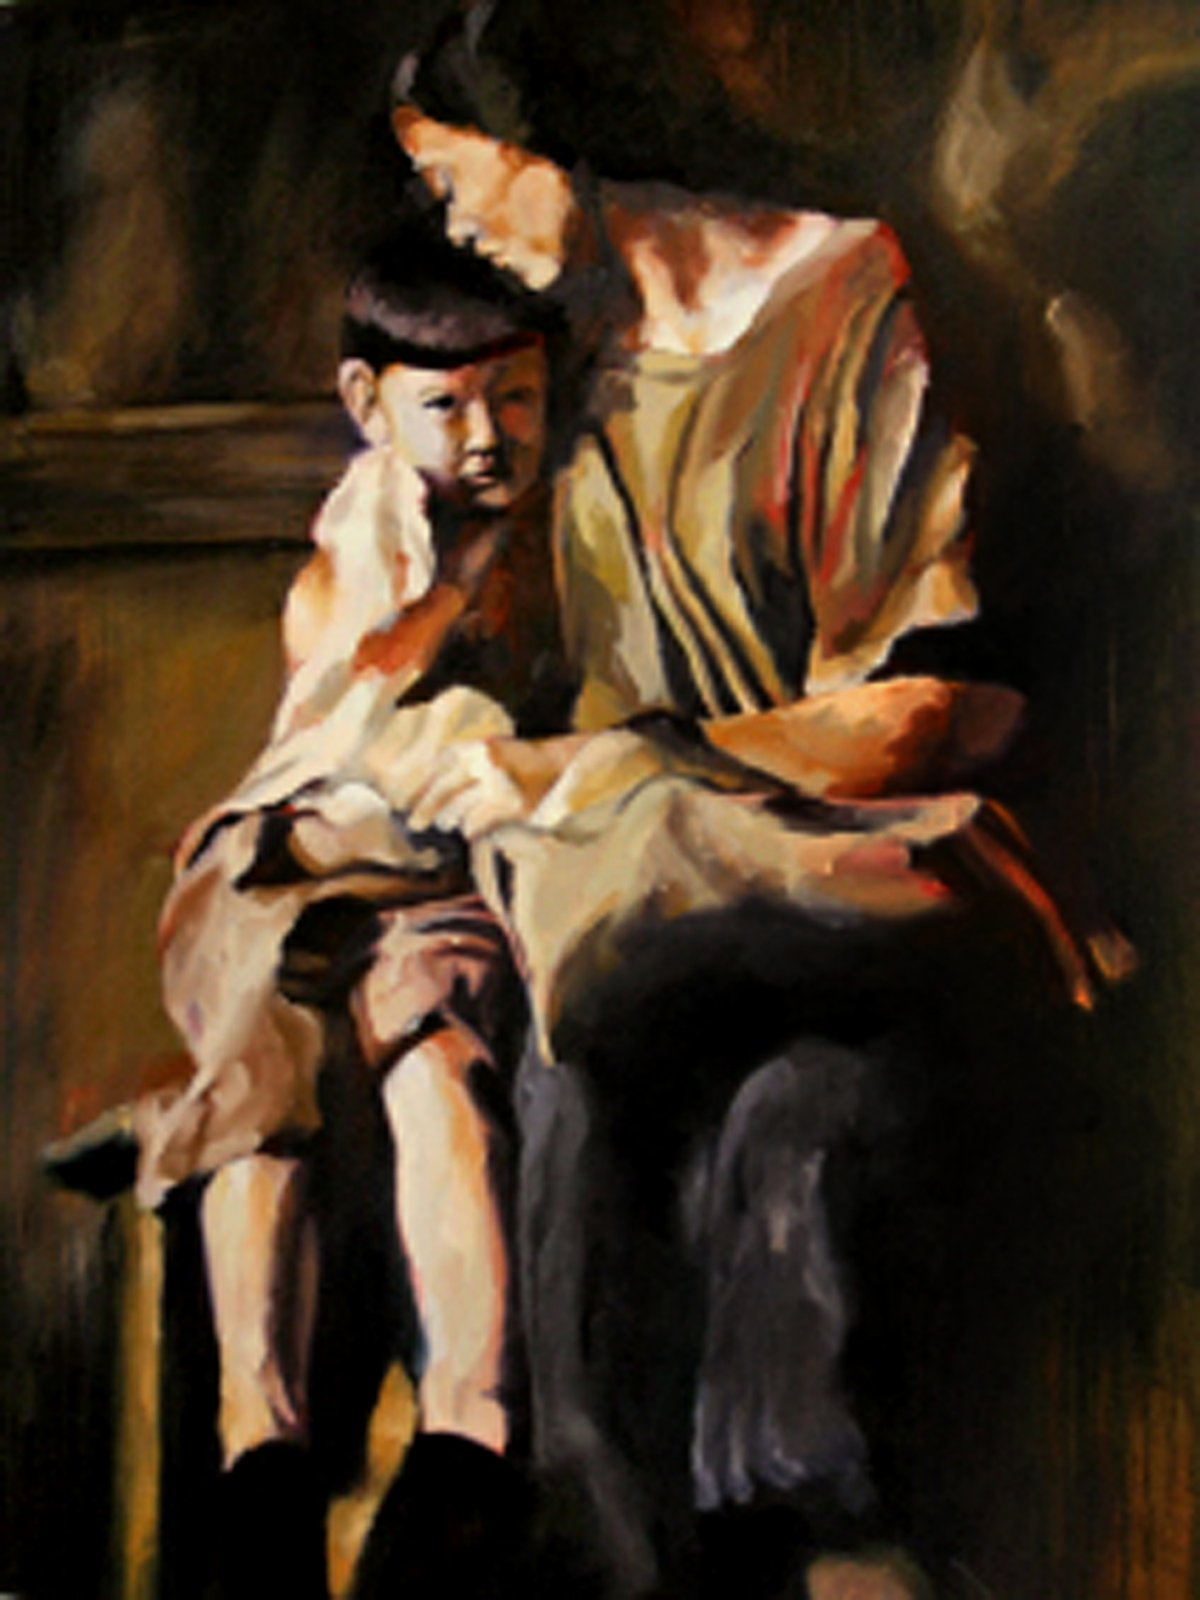 "Remember  , 2003, Oil on canvas, 48 x 30"" Collection of Mr. Paul Nakada and Mrs. Christine Hoang, San Francisco, CA  With a bag in hand, a mother holds her son before sending him off to the new land.  My grandparents were wealthy people, property owners in North Vietnam. When the Viet Cong invaded, my grandparents migrated south to Saigon with their family, where they and their children would be apart from communist rule. Here they found their salvation for a time, until the the Viet Cong moved further south, resulting to their escape. They left behind all material possession, their homeland, and the life they once knew, in order to seek freedom elsewhere, anywhere but here. This painting is dedicated to those who have sacrificed much in order to allow their loved ones a greater opportunity."